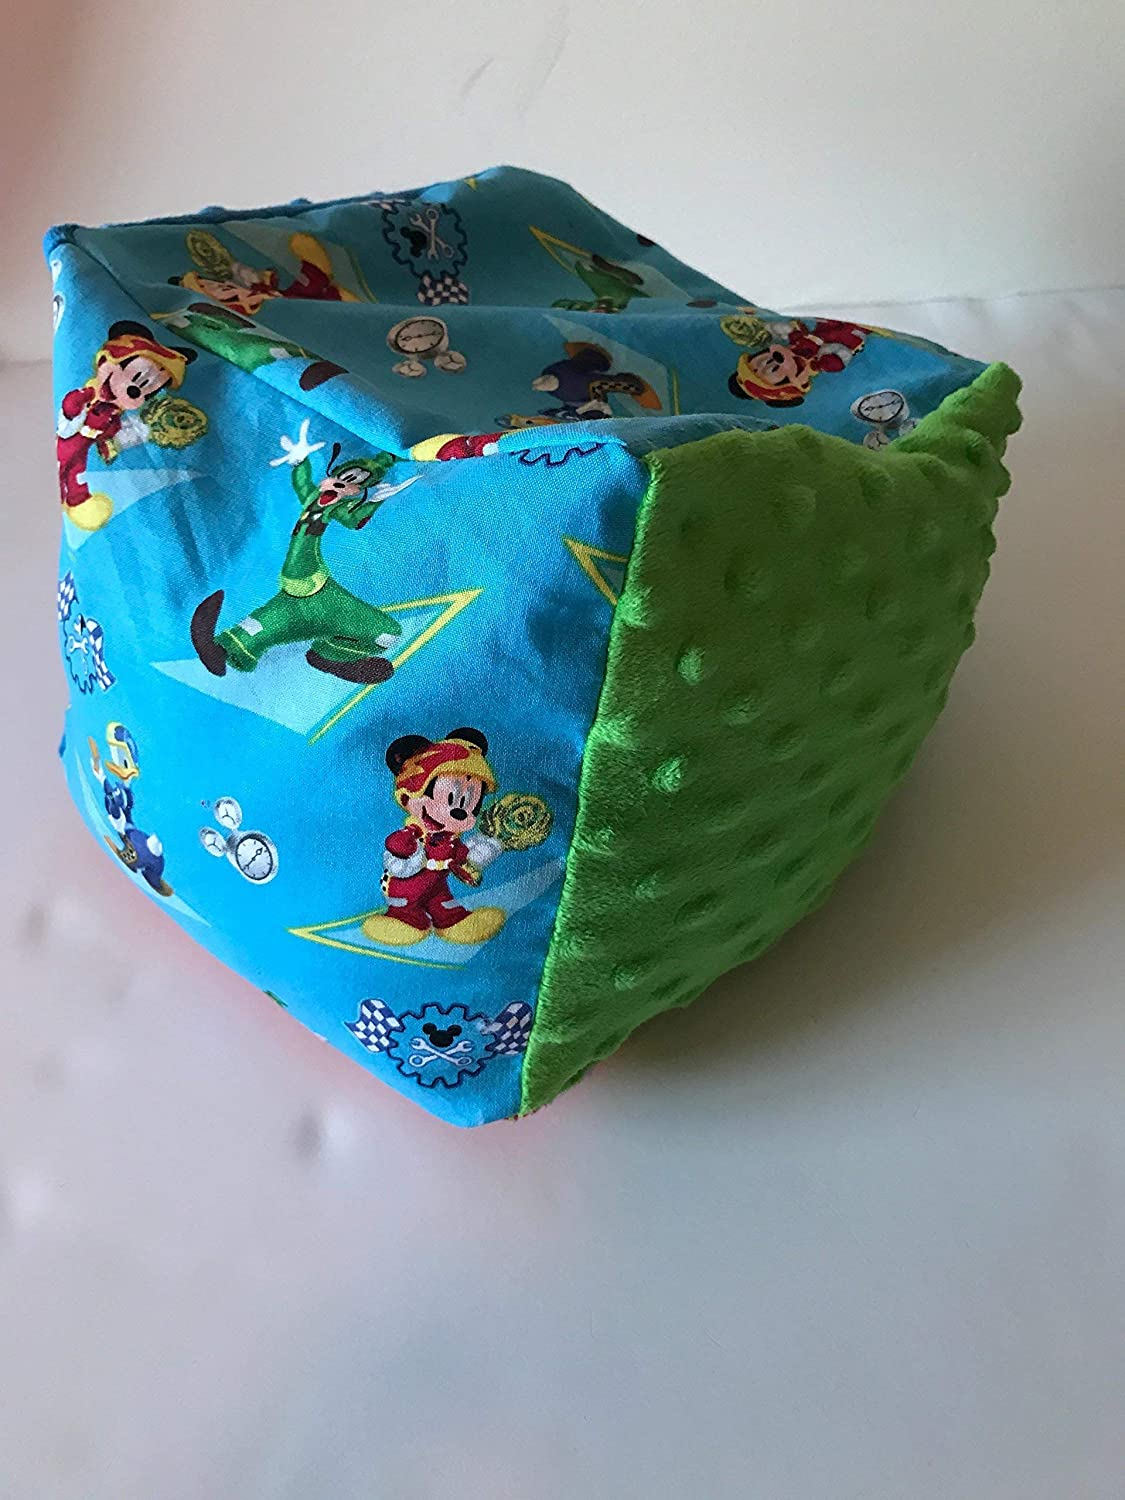 large sensory toy fidget block autism sensory toy poly pellets Weighted character Block 4-5 lbs